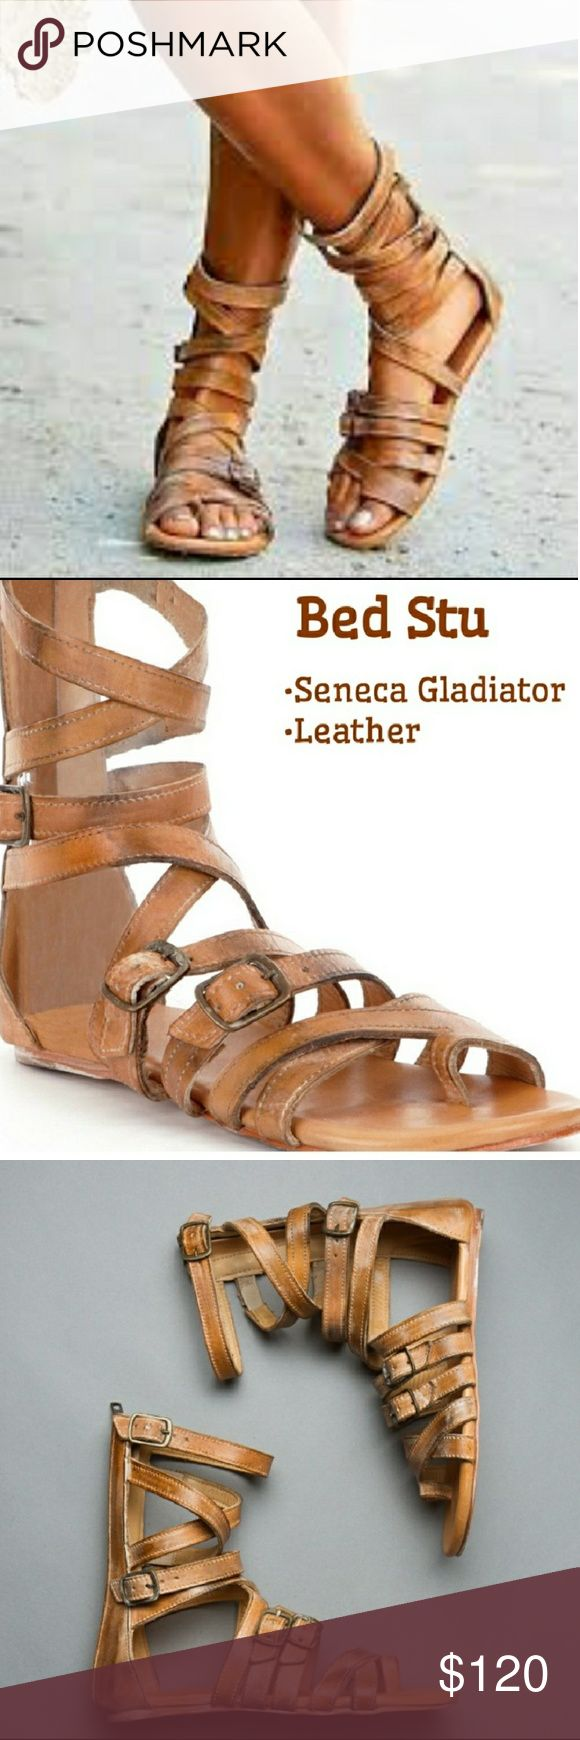 Bed Stu Seneca gladiator sandals tan rustic 9 Gorgeous sandals handmade in Mexico, reposh that I did not wear, only worn a couple times, in excellent used condition, no flaws. Perfect for summer! Bed Stu Shoes Sandals